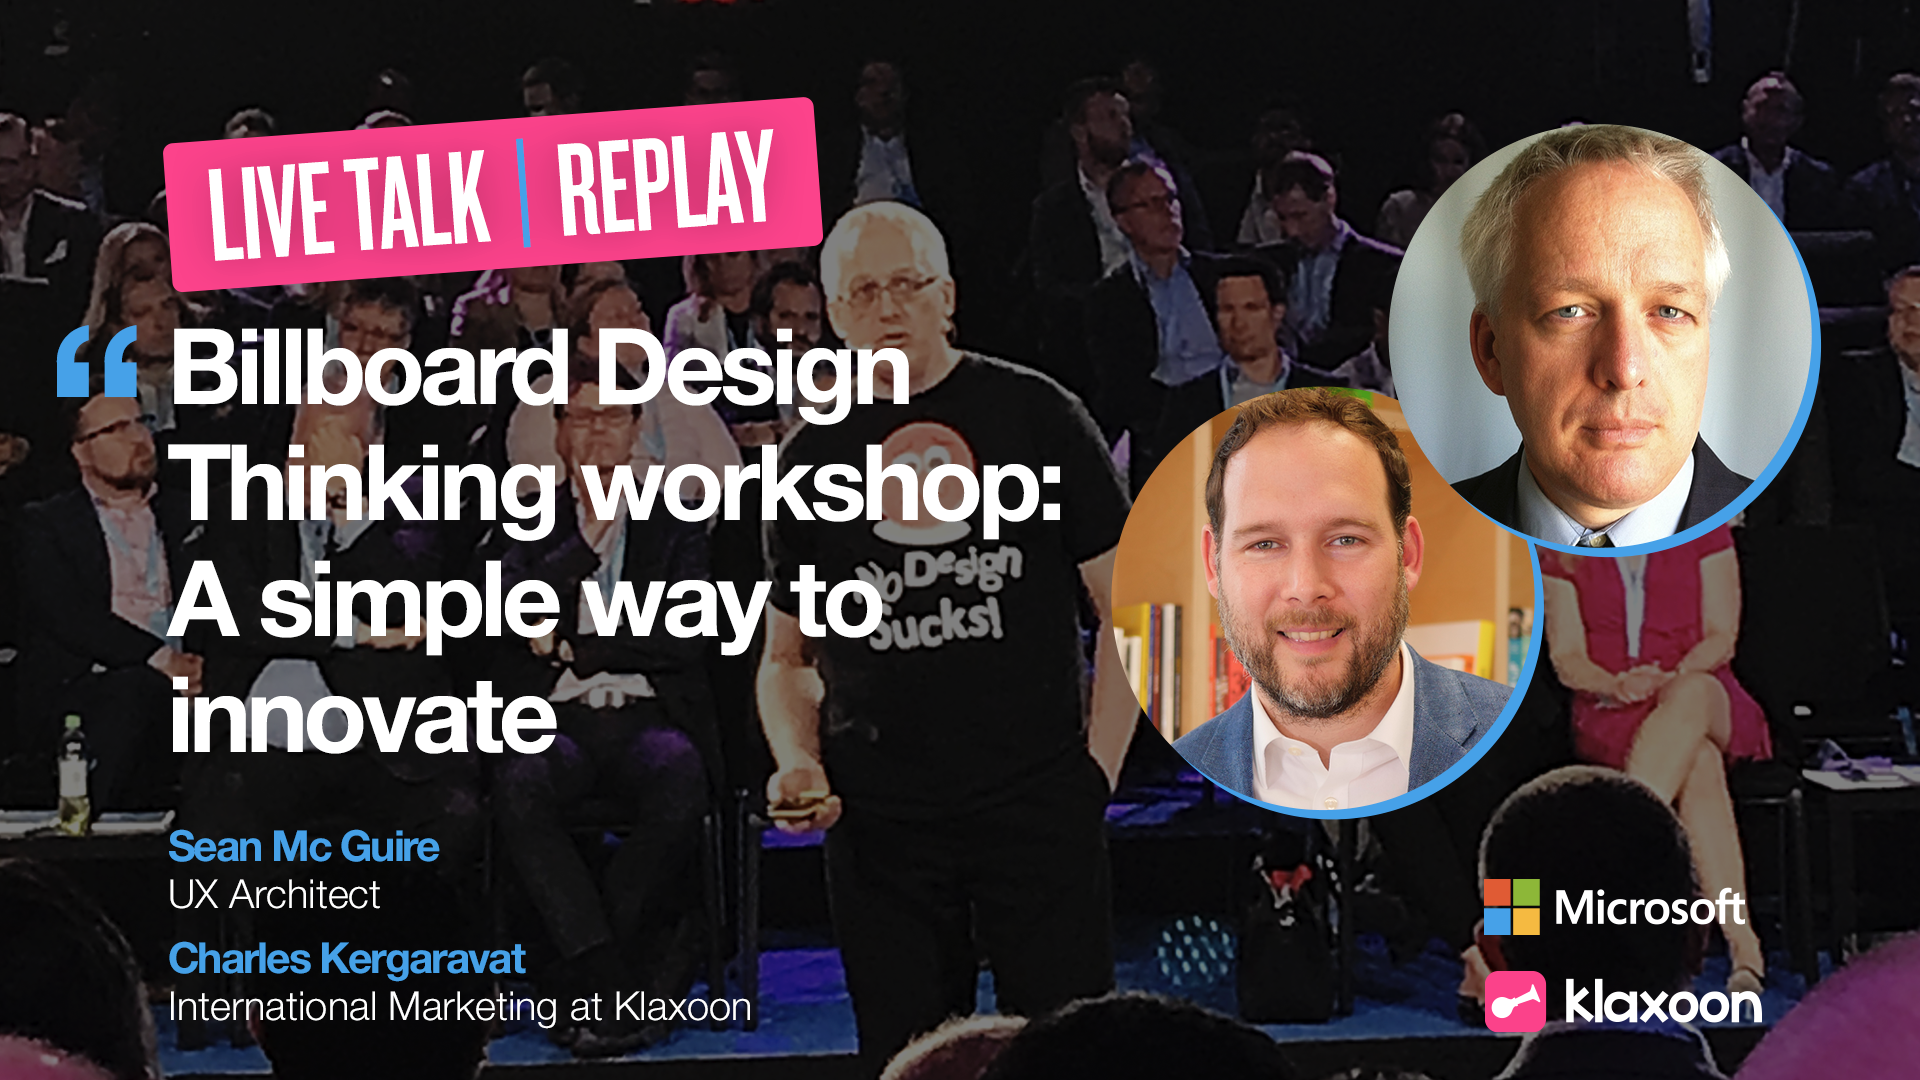 Live Billboard Design Thinking workshop: a simple way to innovate